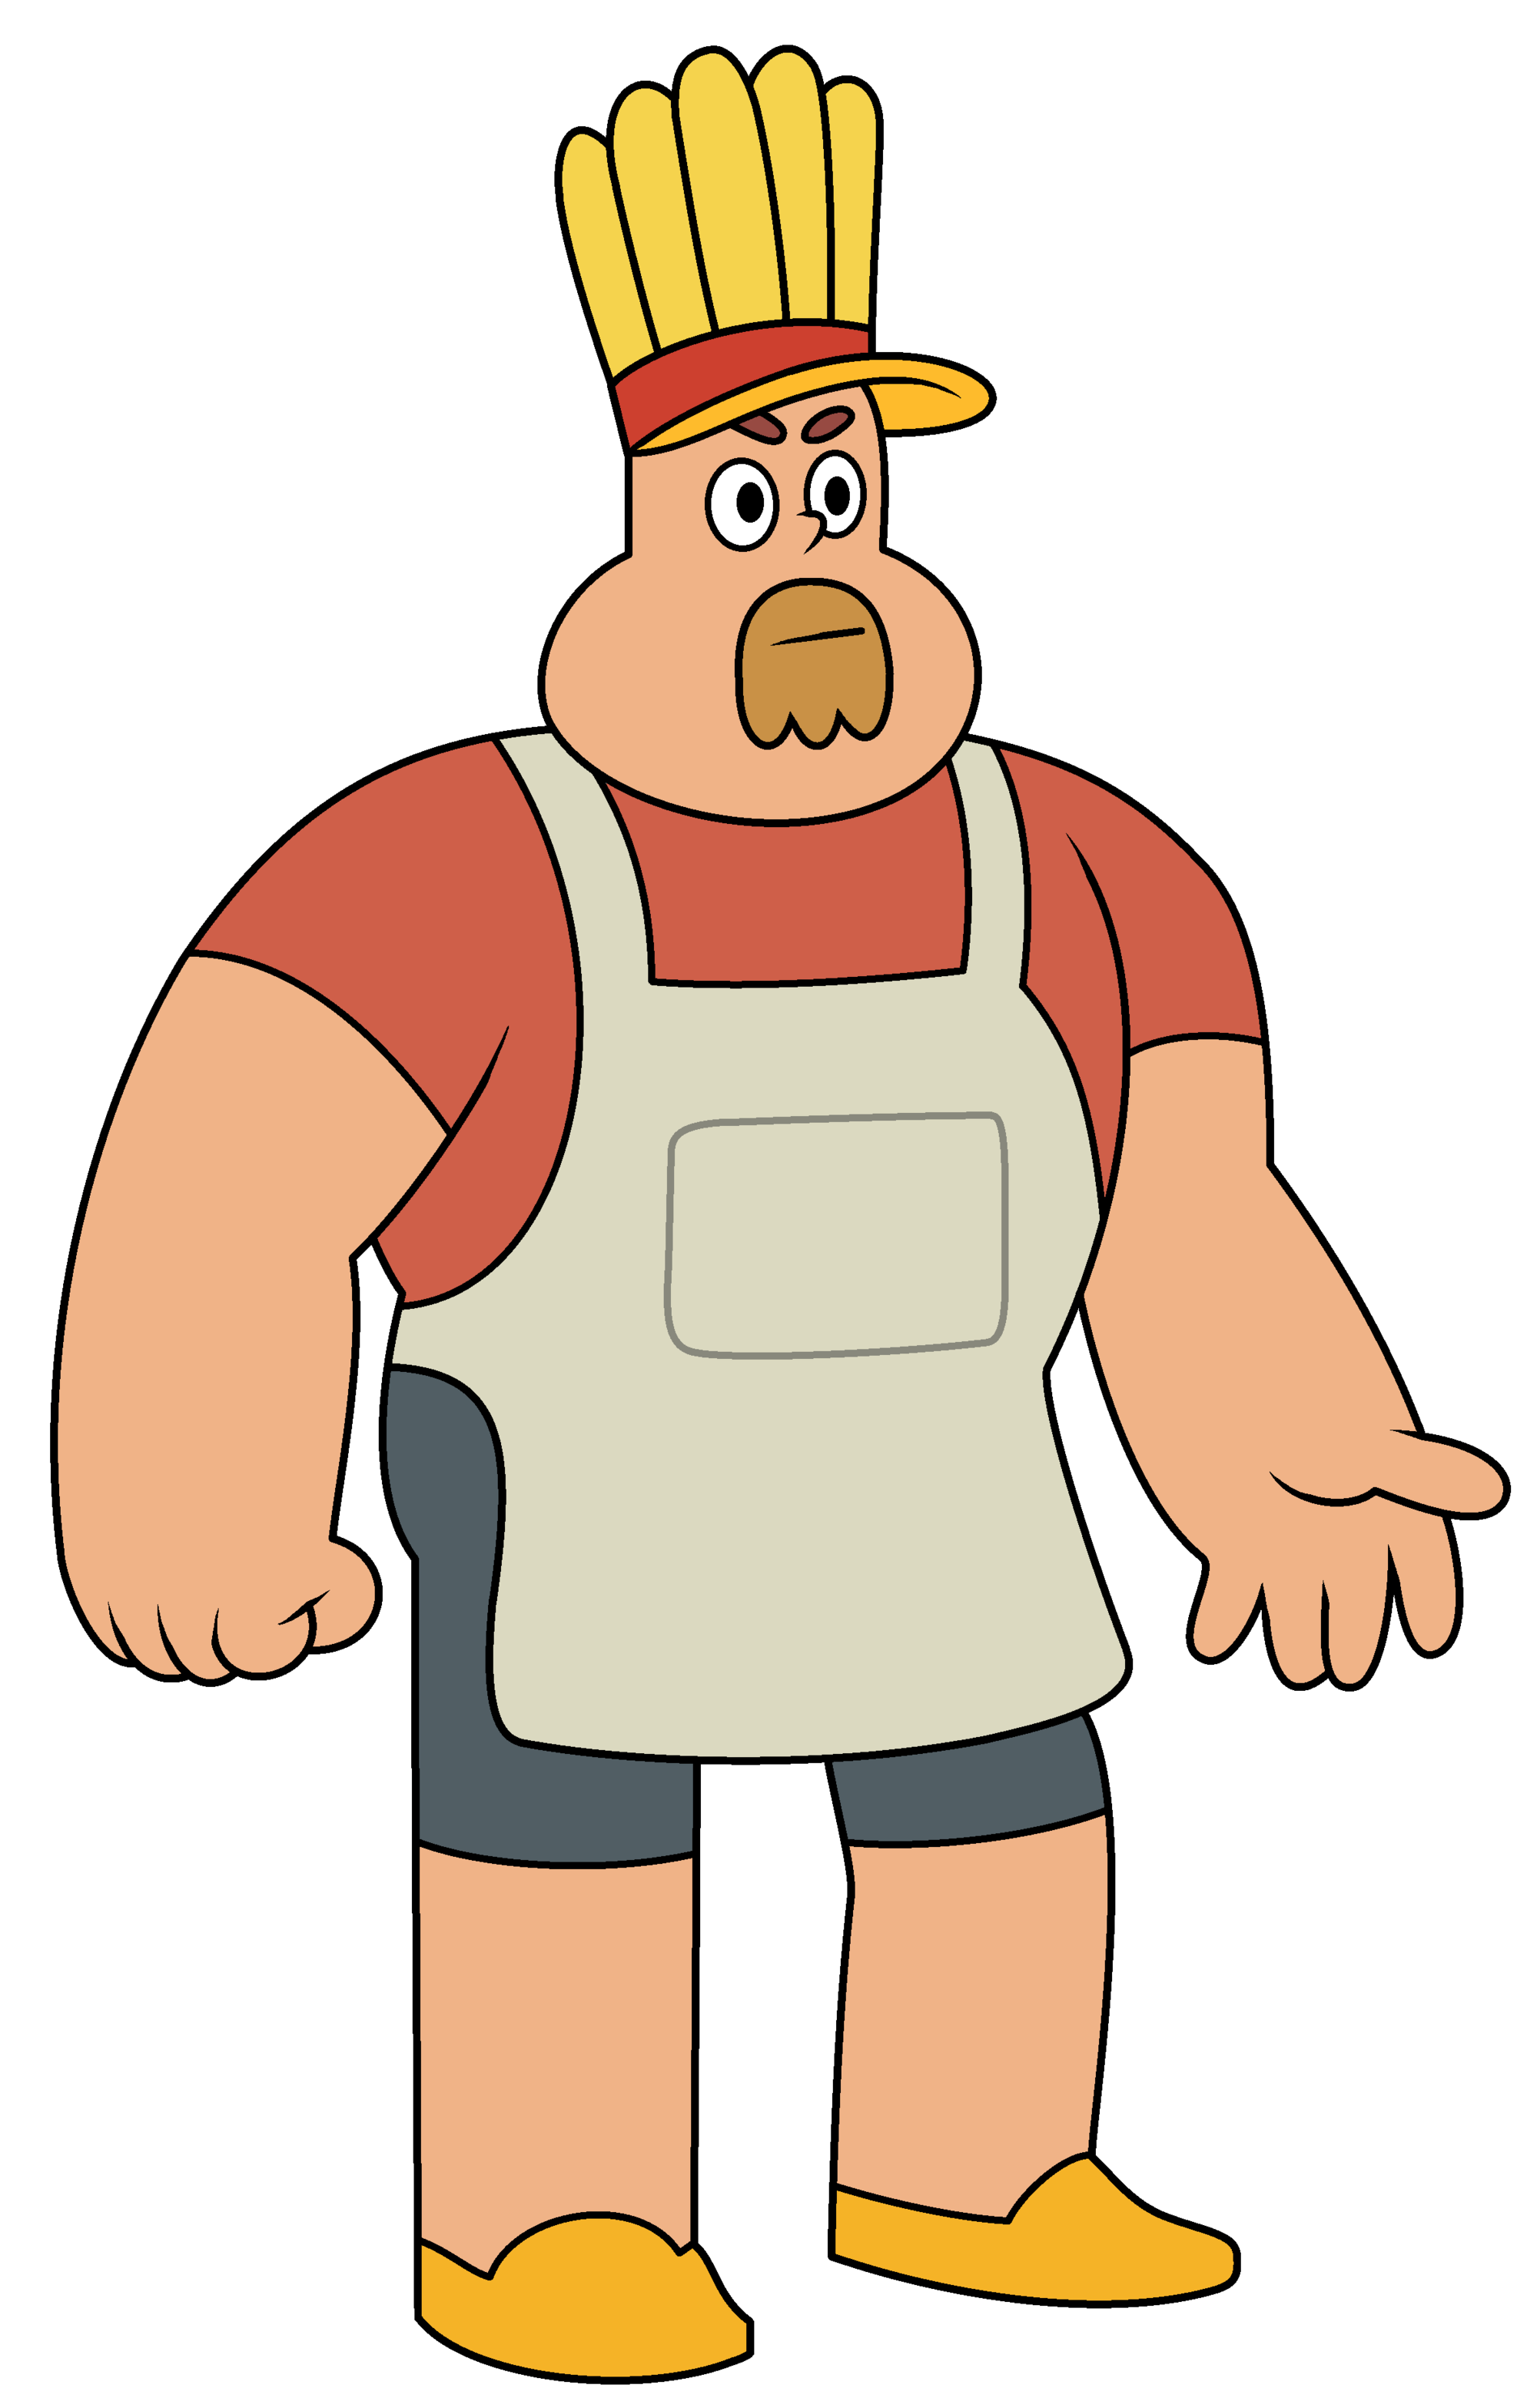 Proud clipart evil businessman. Mr fryman steven universe